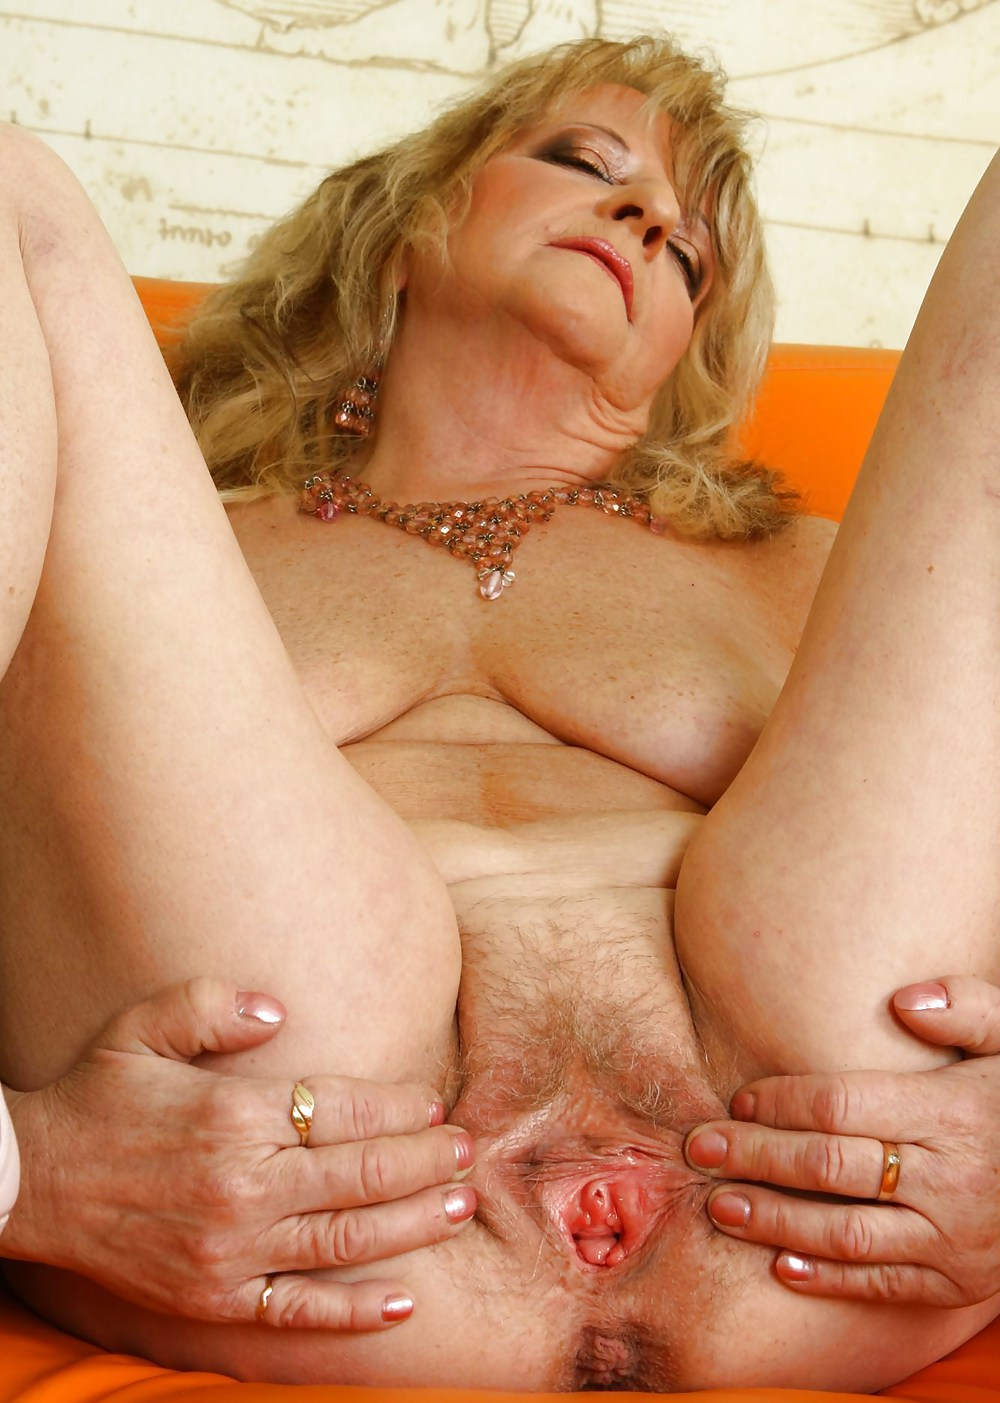 Old women pussy pics